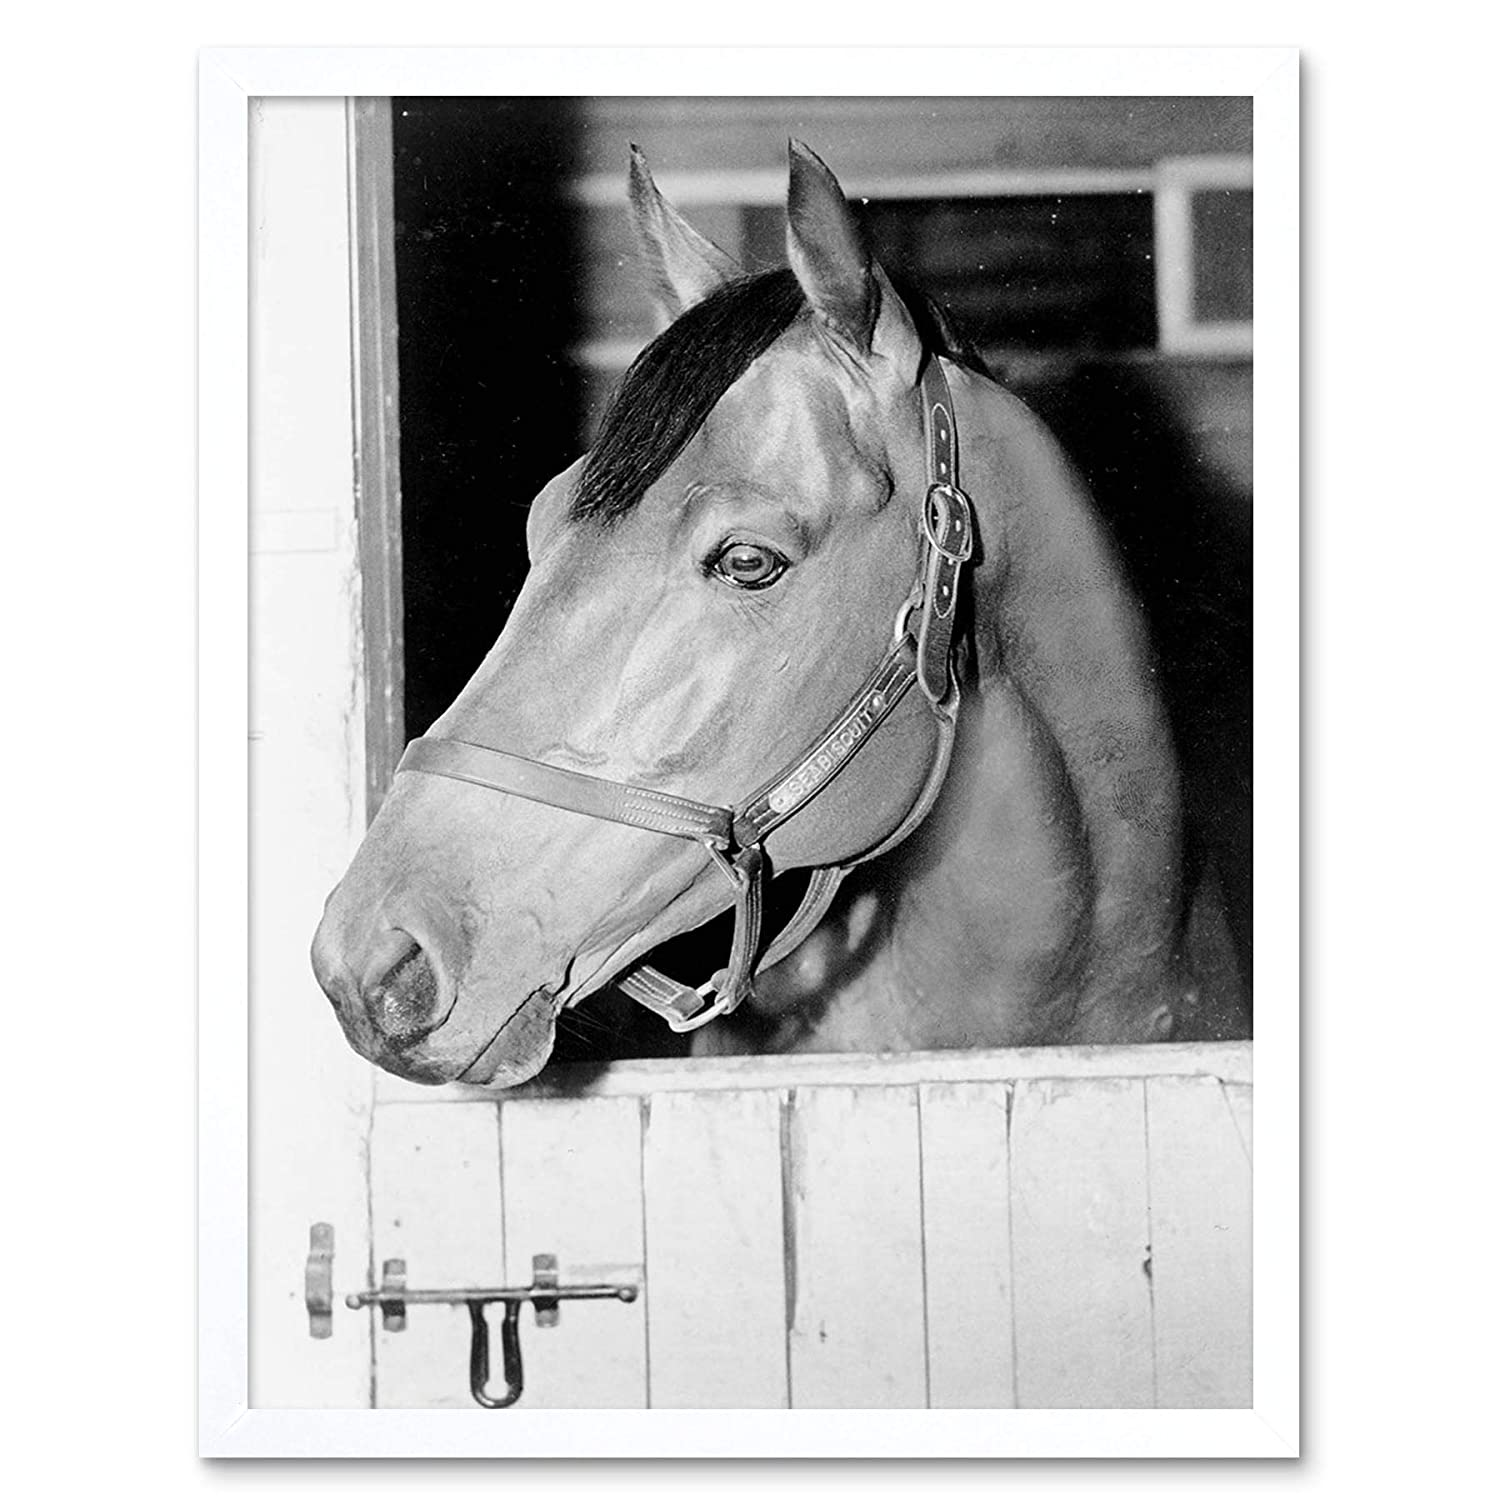 Wee Blue Coo Vintage Photography Sport Animal Portrait Seabiscuit Racehorse Stall Unframed Wall Art Print Poster Home Decor Premium